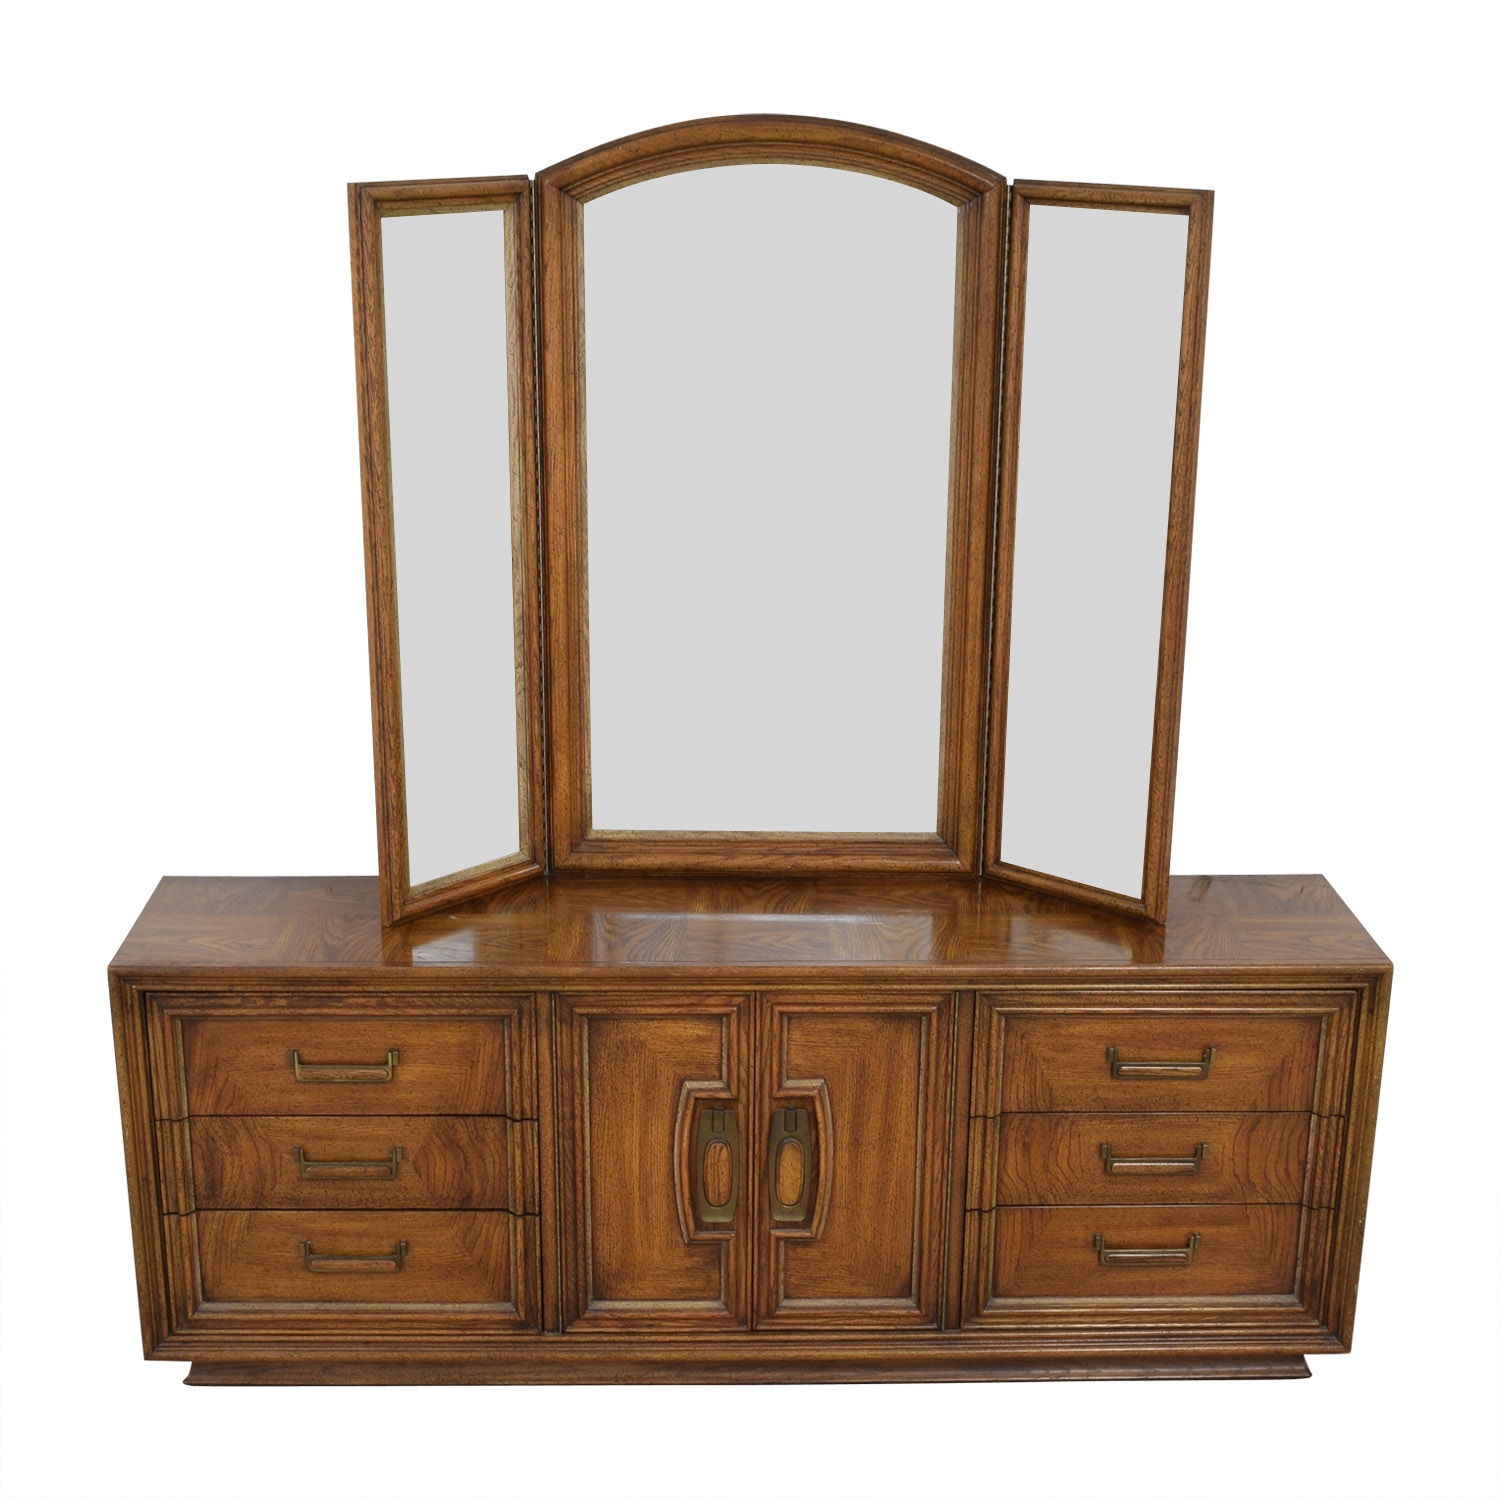 Vintage Dresser with Vanity Mirror price